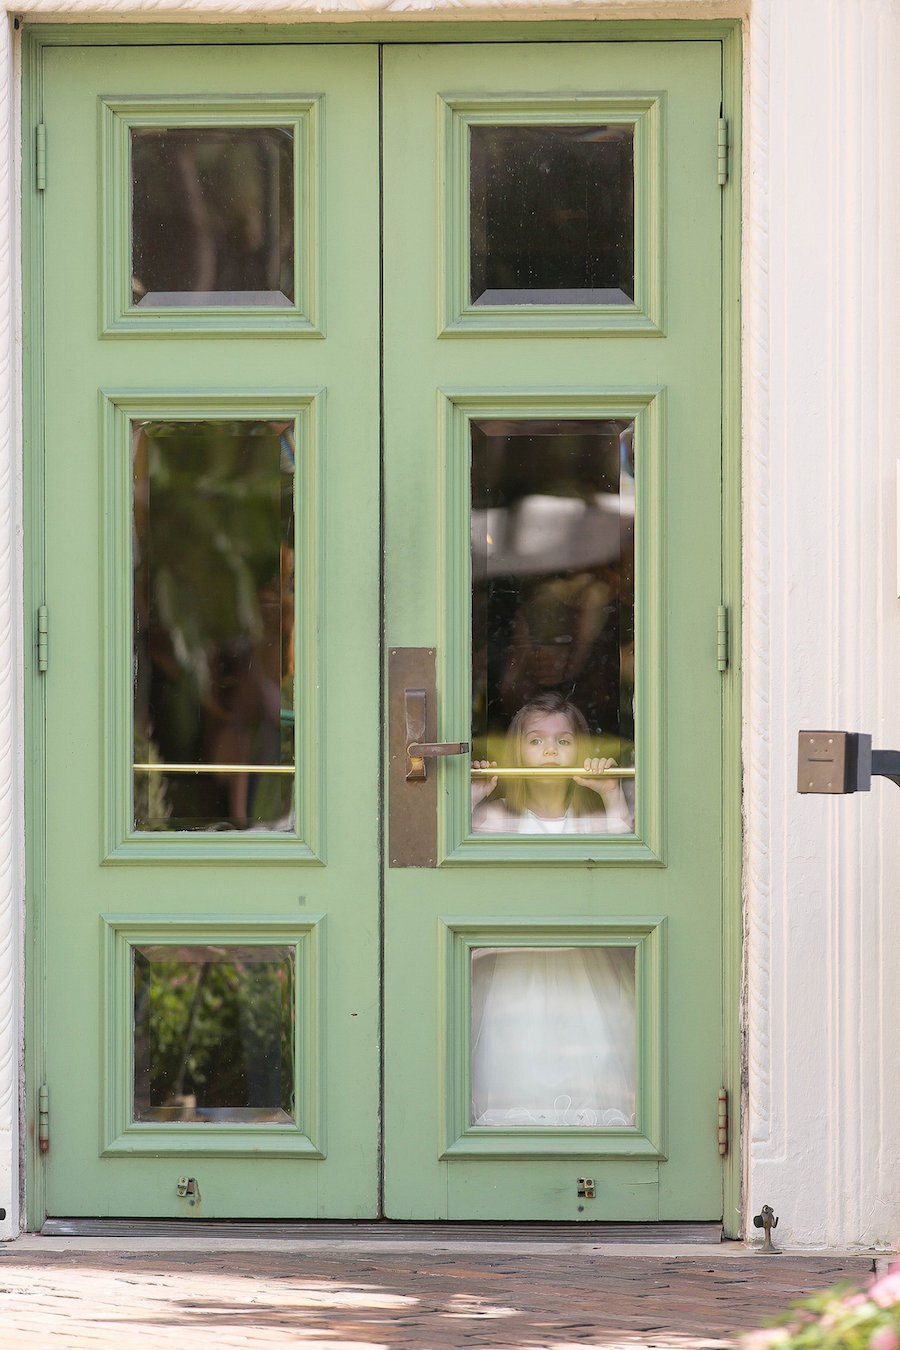 Flower Girl on Wedding Day Peering out Window| Photo by Tampa Bay Wedding Photographer Kristen Marie Photography